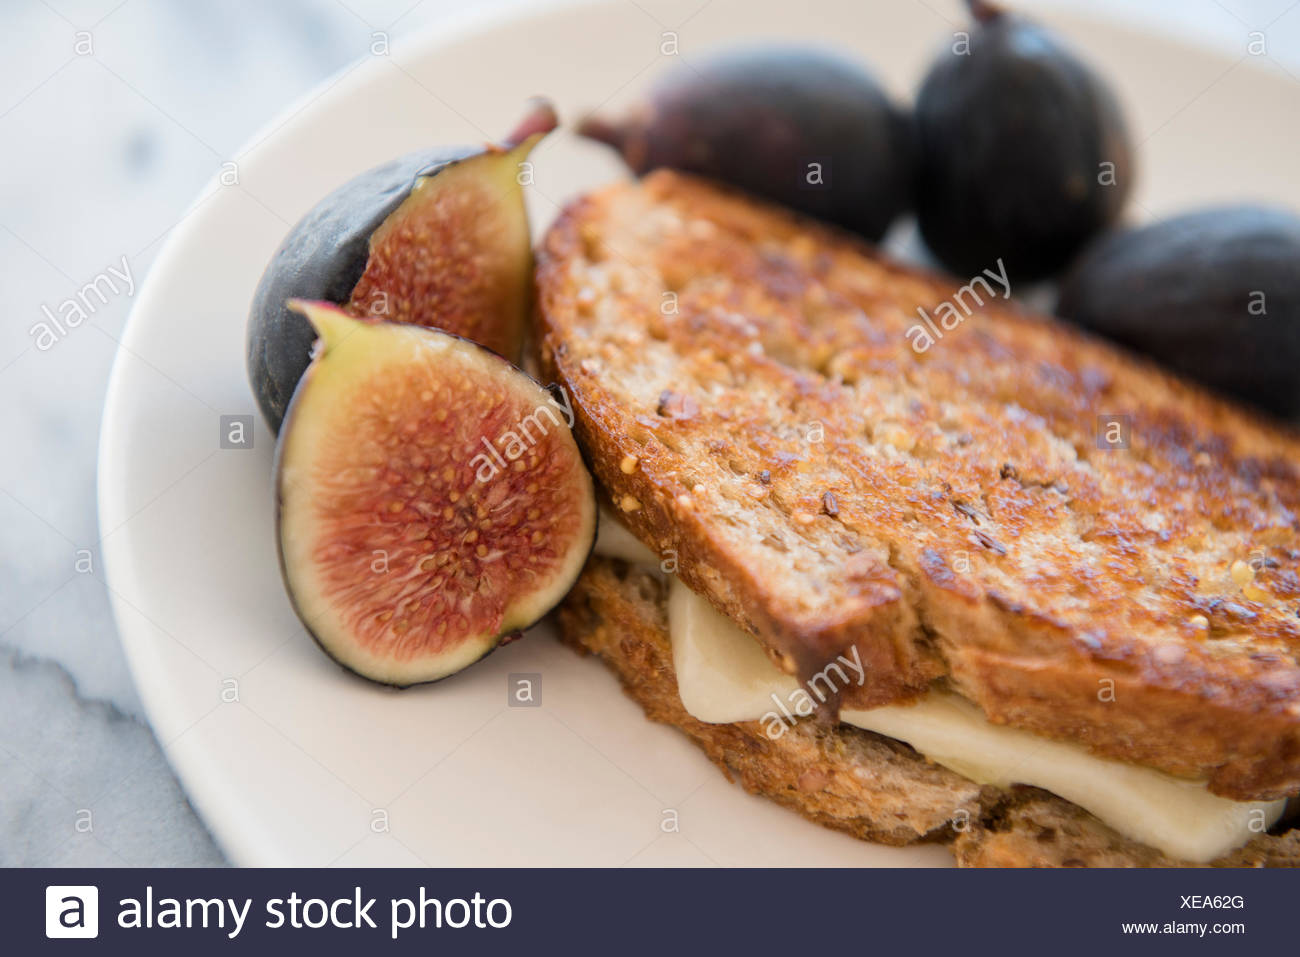 Grilled cheese sandwich with figs on plate - Stock Image